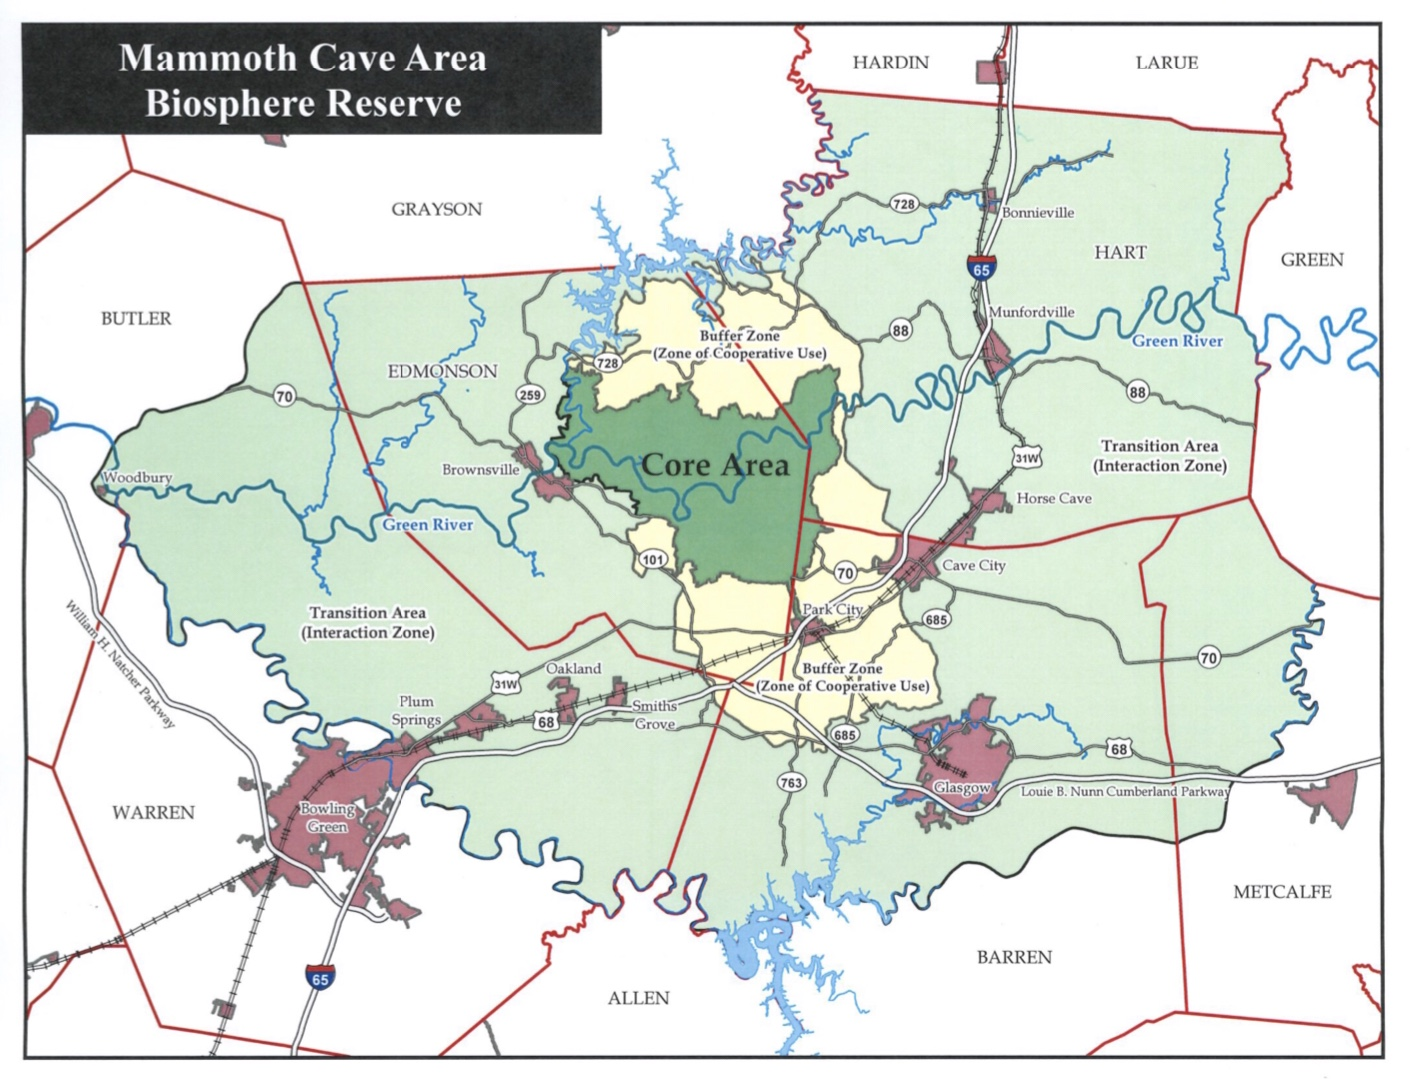 endless caverns map, cave junction oregon map, wind cave national park map, the land of painted caves map, mammoth caves tennessee, glacier national park, shenandoah national park, carlsbad caverns national park, yellowstone national park on a map, hawaii volcanoes national park, great smoky mountains national park, colorado river map, sequoia national park, crater lake national park, u.s. forest map, grand canyon national park, jewel cave national monument, badlands national park, bigfoot cave map, ky state parks map, mesa verde national park, petrified forest map, wonder cave map, acadia national park, cosmic cavern map, caves in new mexico map, black canyon of the gunnison map, sylvan cave map, timpanogos cave national monument map, hot springs national park, olympic national park, great onyx cave map, cuyahoga valley national park, yosemite national park, redwood national and state parks, cave of the winds map, wind cave national park, mountain river cave vietnam map, on mammoth cave map